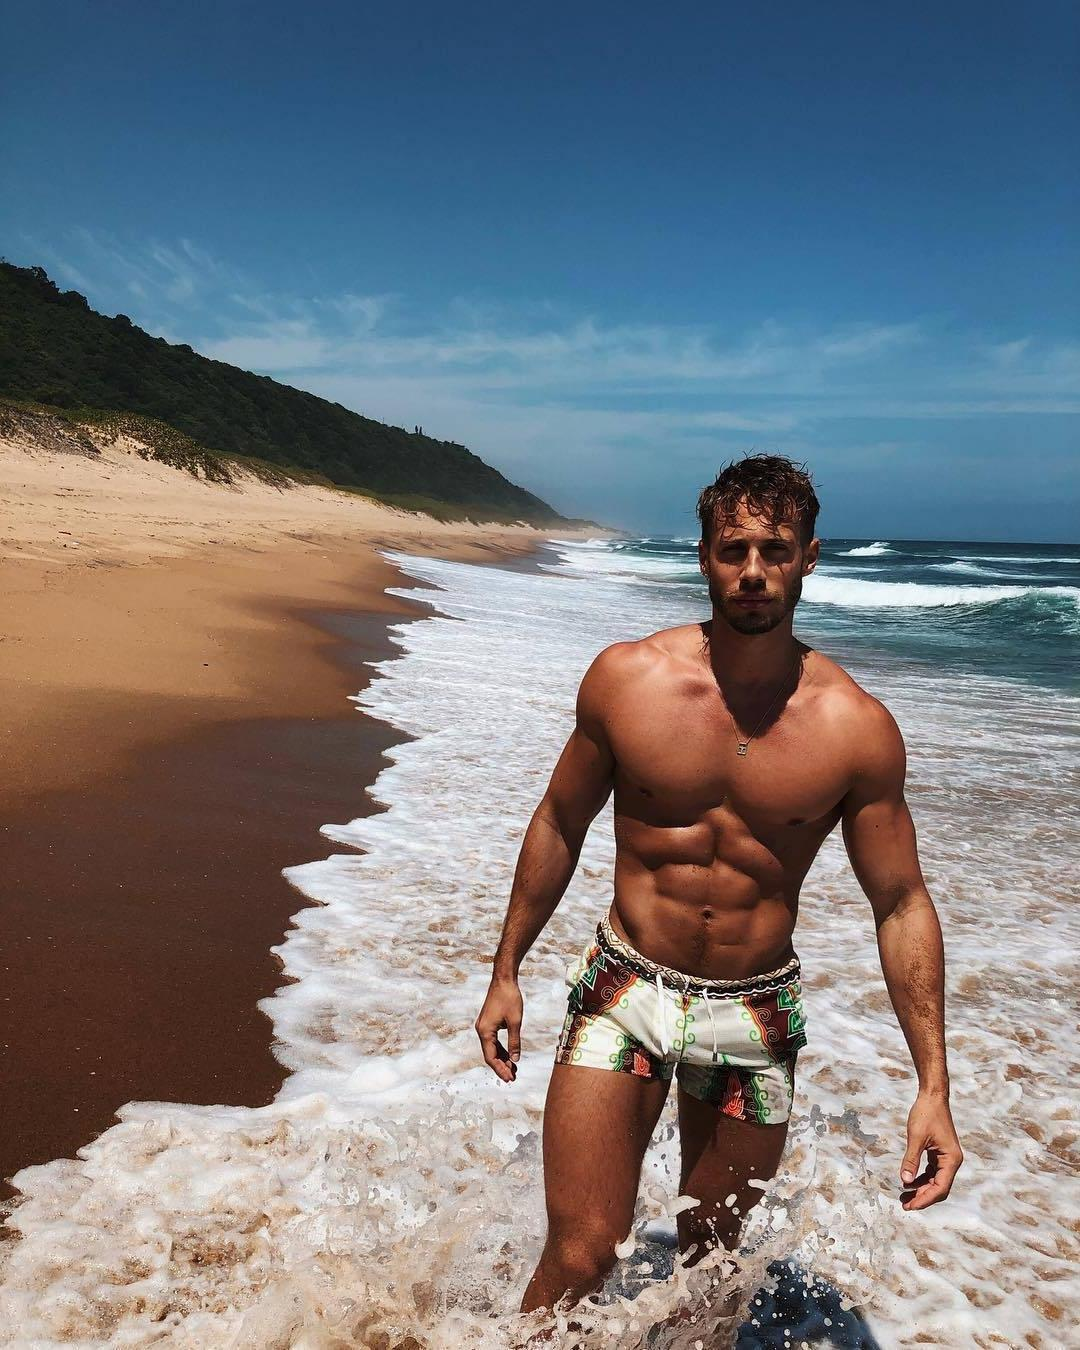 sexy-gay-guys-beach-body-fit-shirtless-dude-ocean-waves